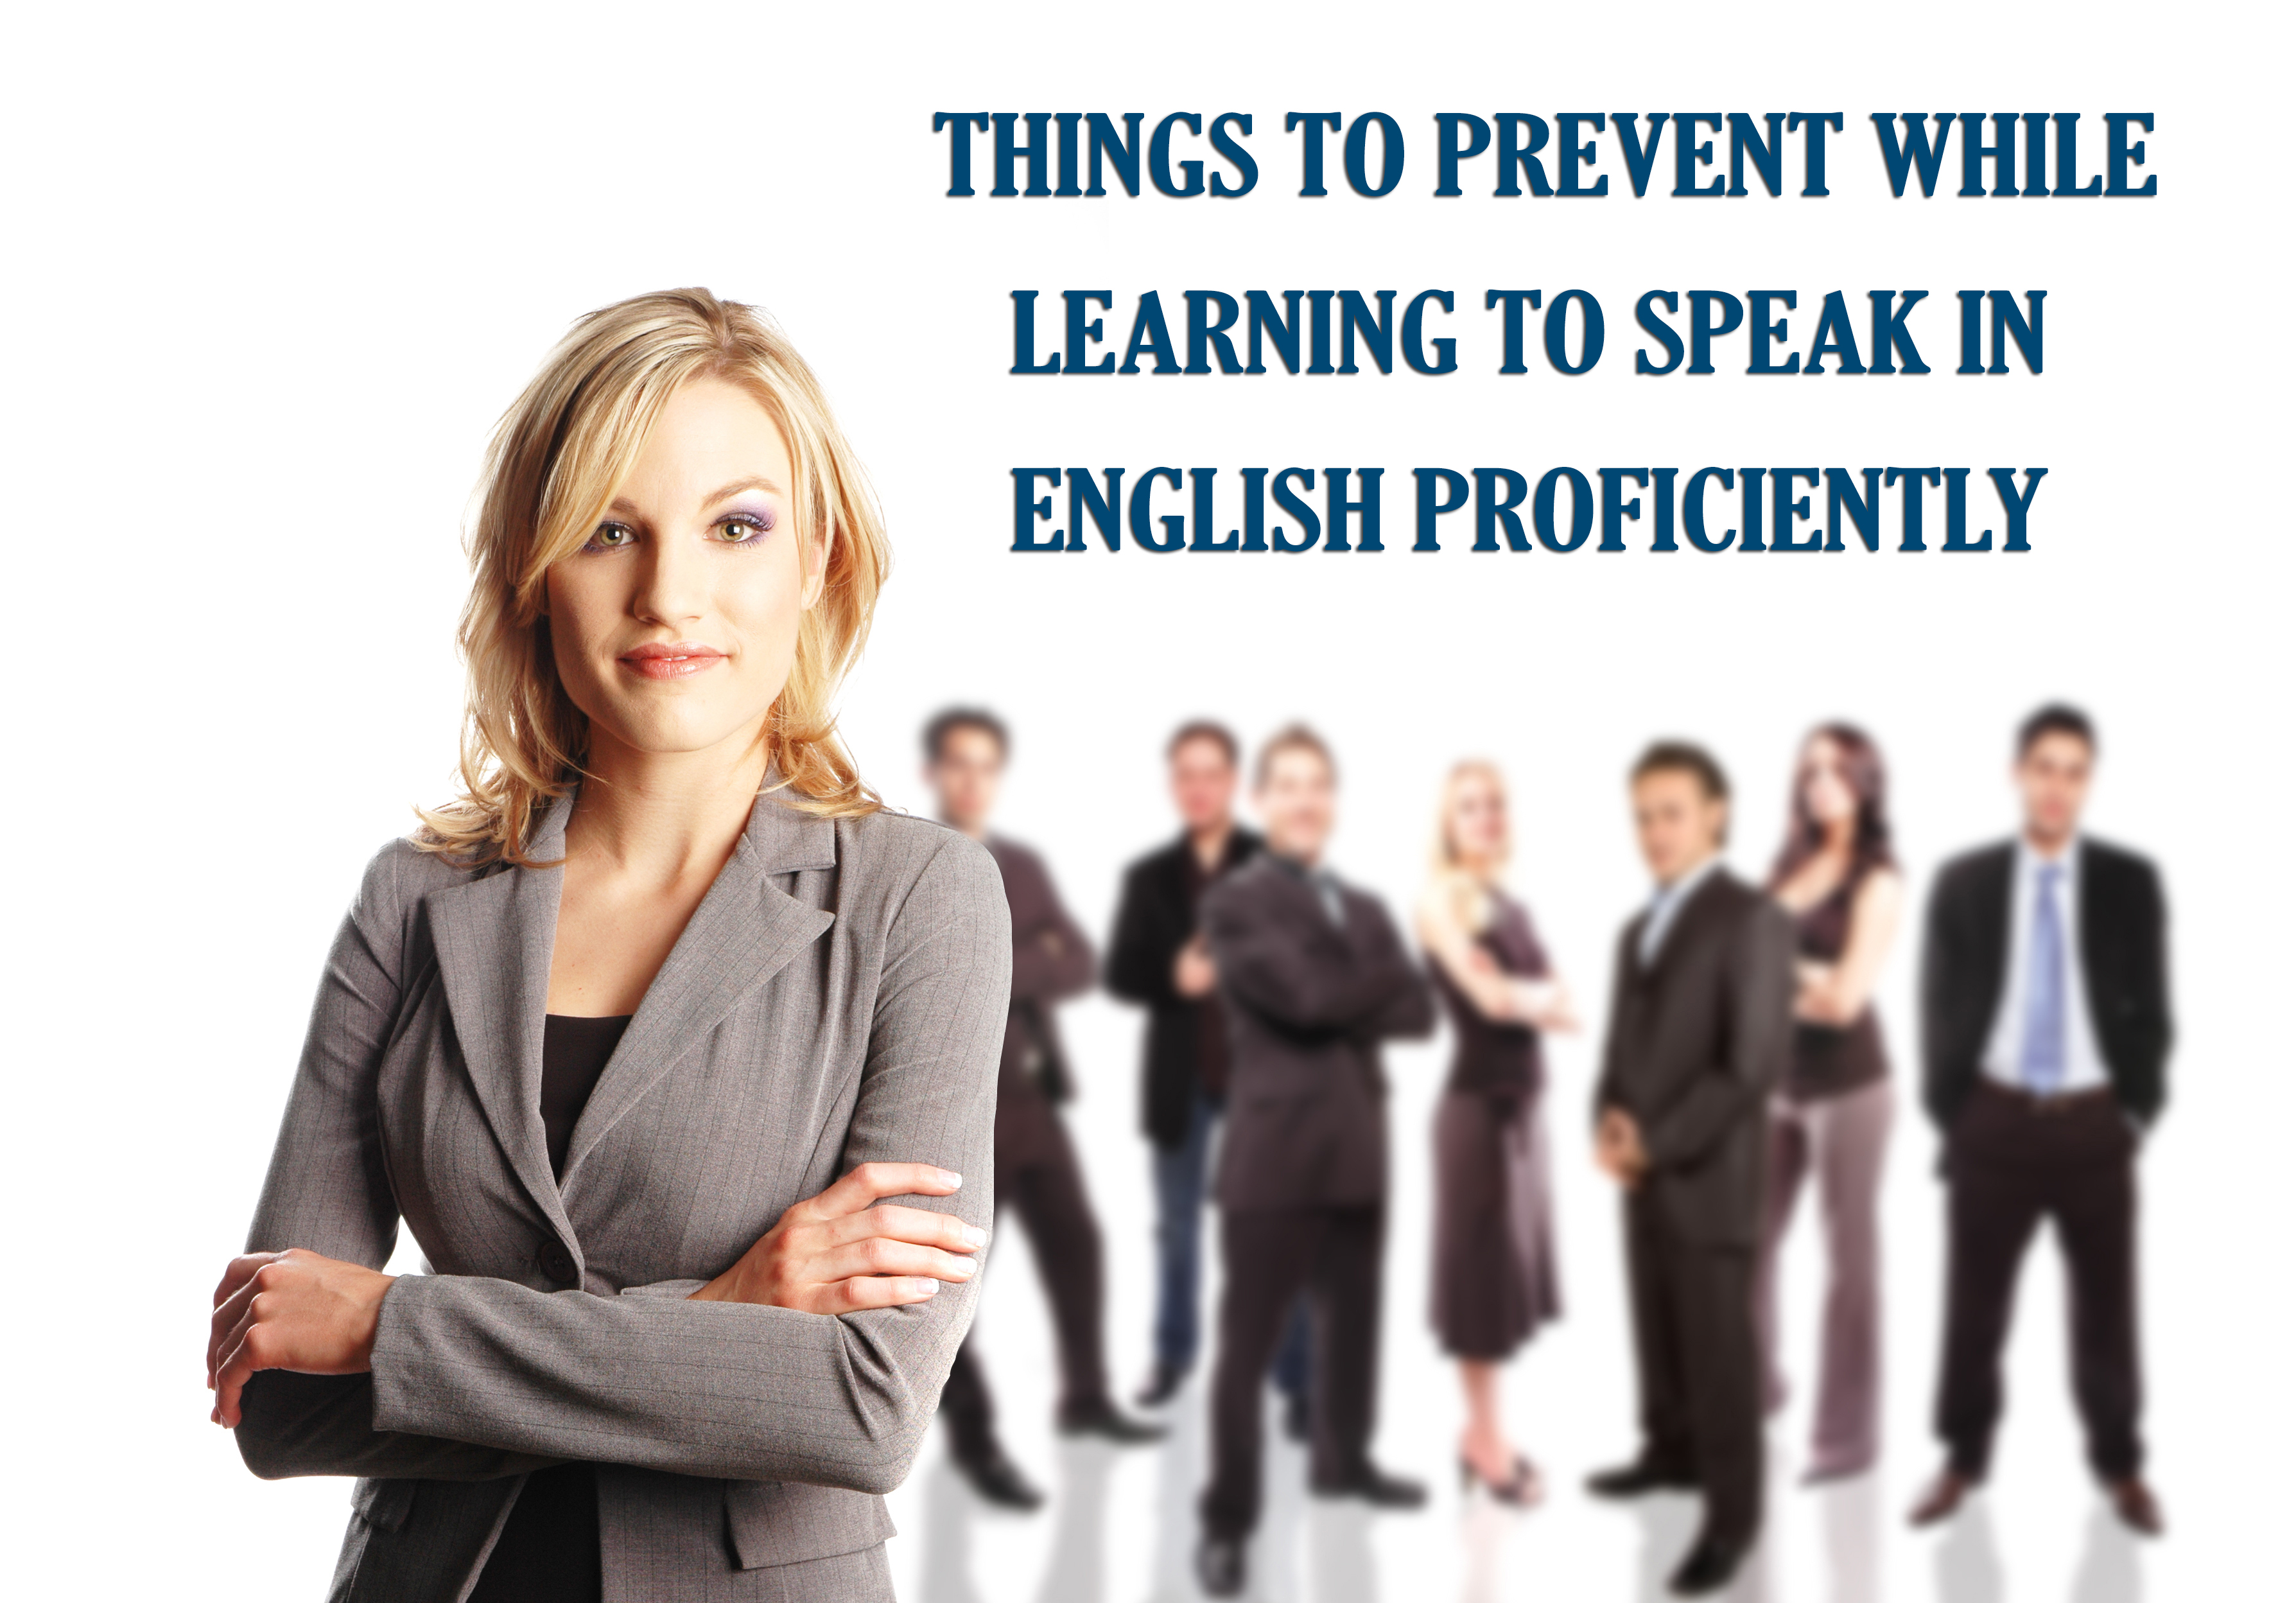 Things to Prevent While Learning to Speak English Proficiently